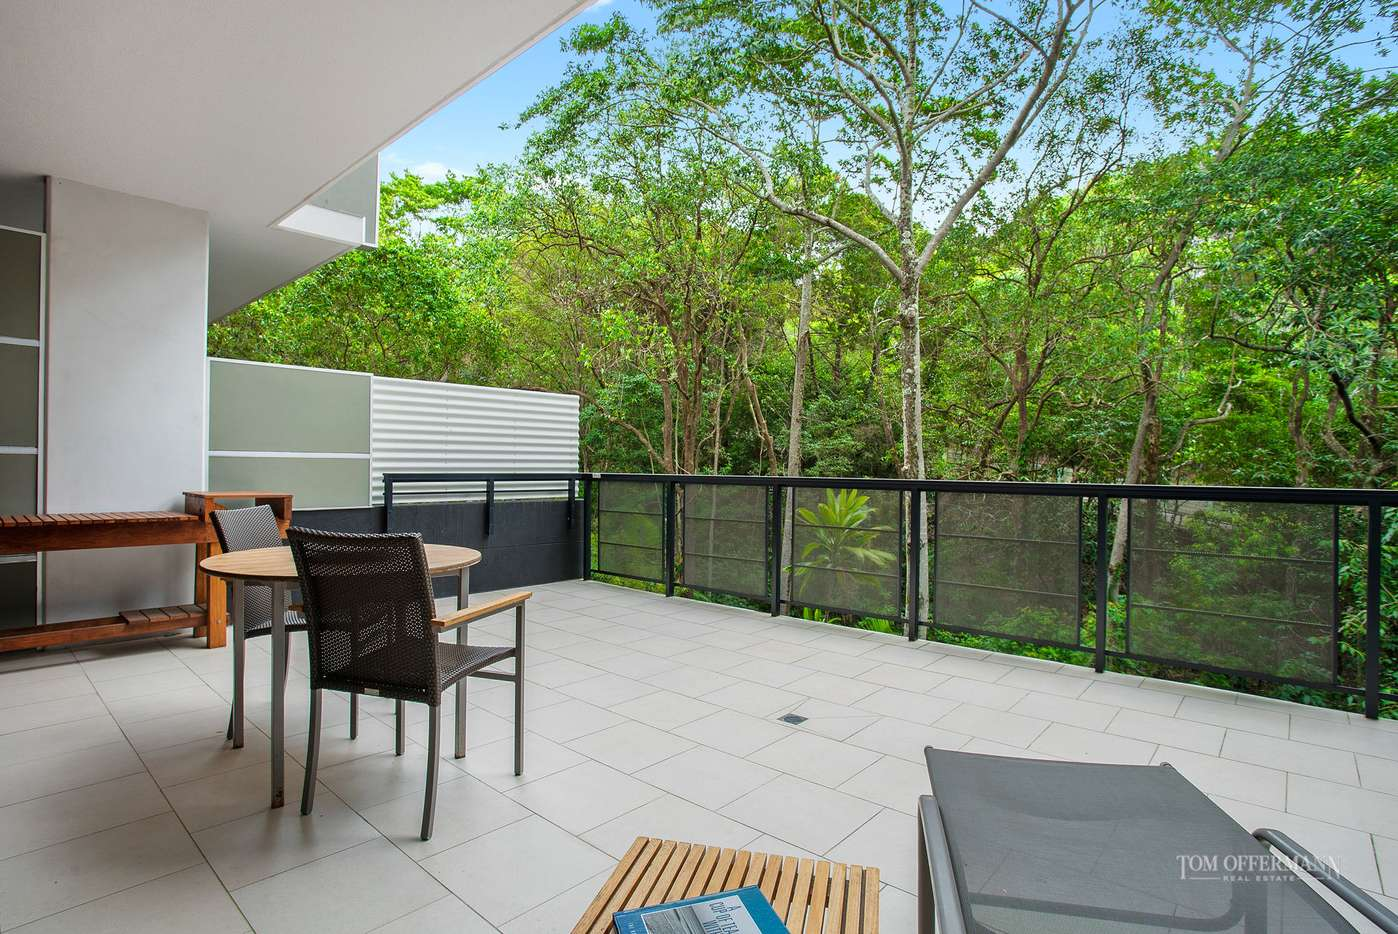 Main view of Homely unit listing, 8303/5 Morwong Drive, Noosa Heads, QLD 4567